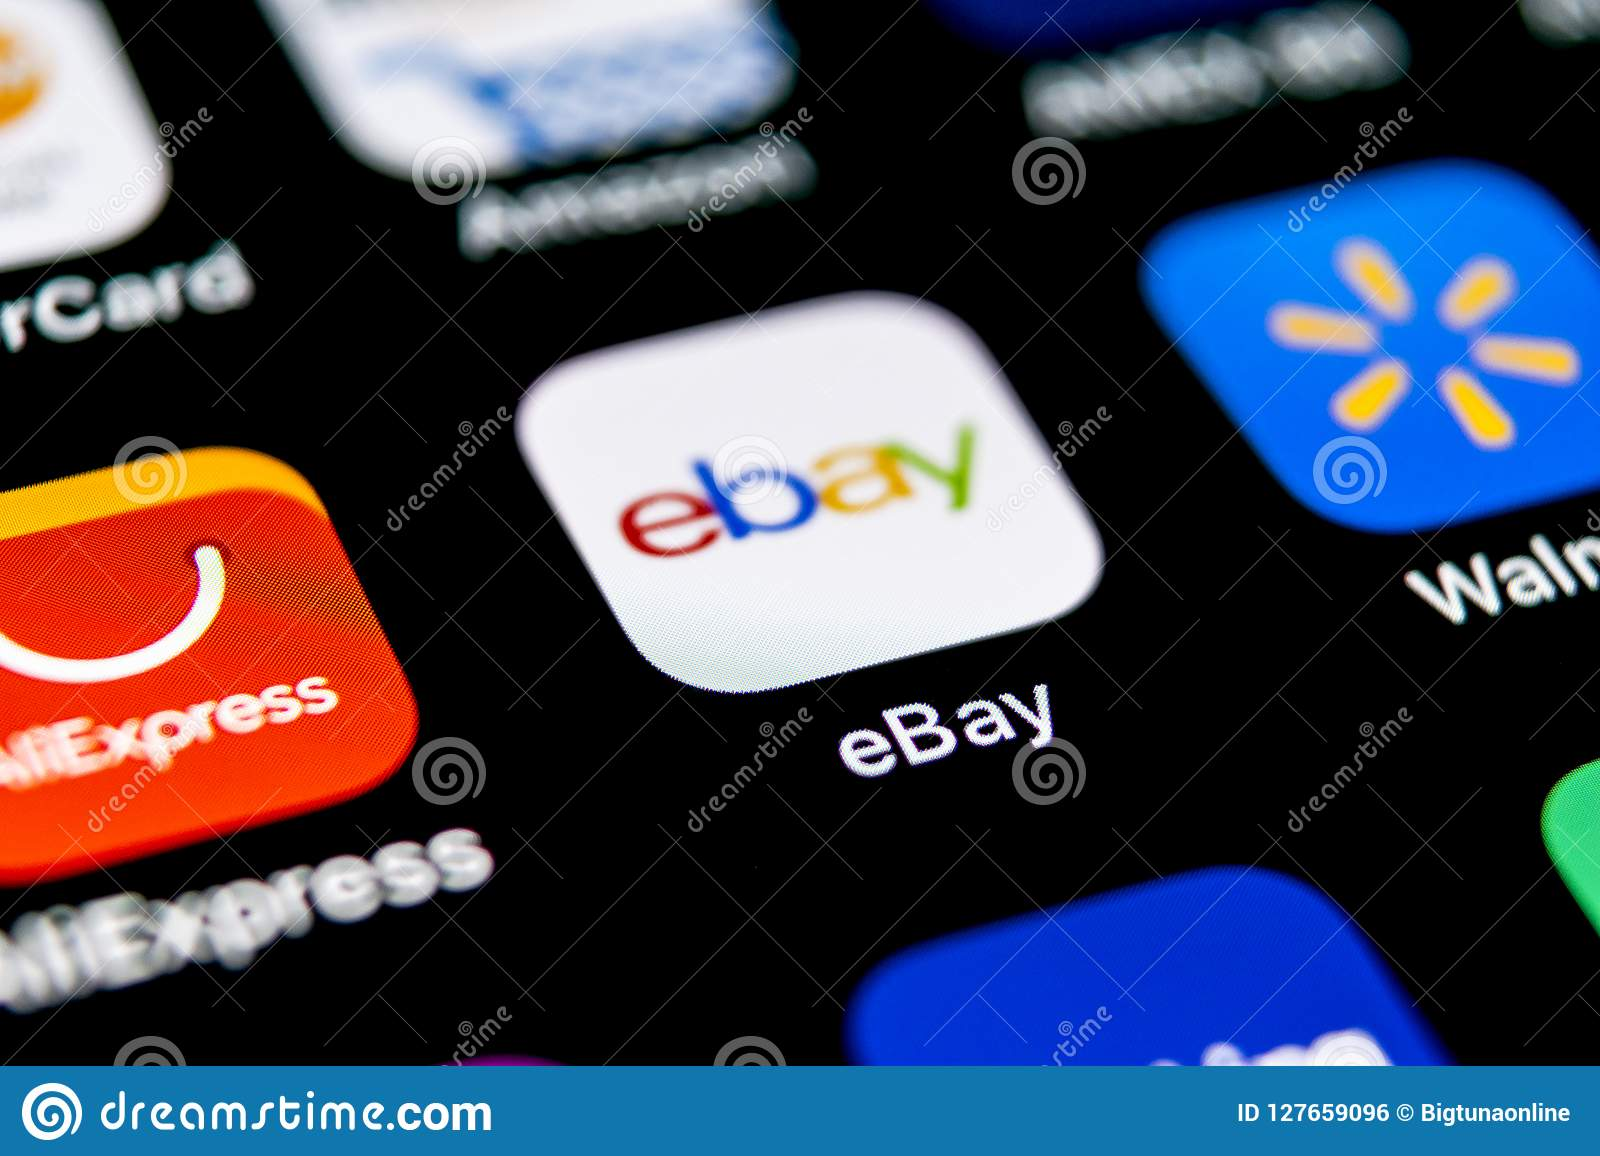 Ebay Application Icon On Apple Iphone X Screen Close Up Ebay App Icon Ebay Com Is Largest Online Auction And Shopping Websites Editorial Photo Image Of Page Logo 127659096